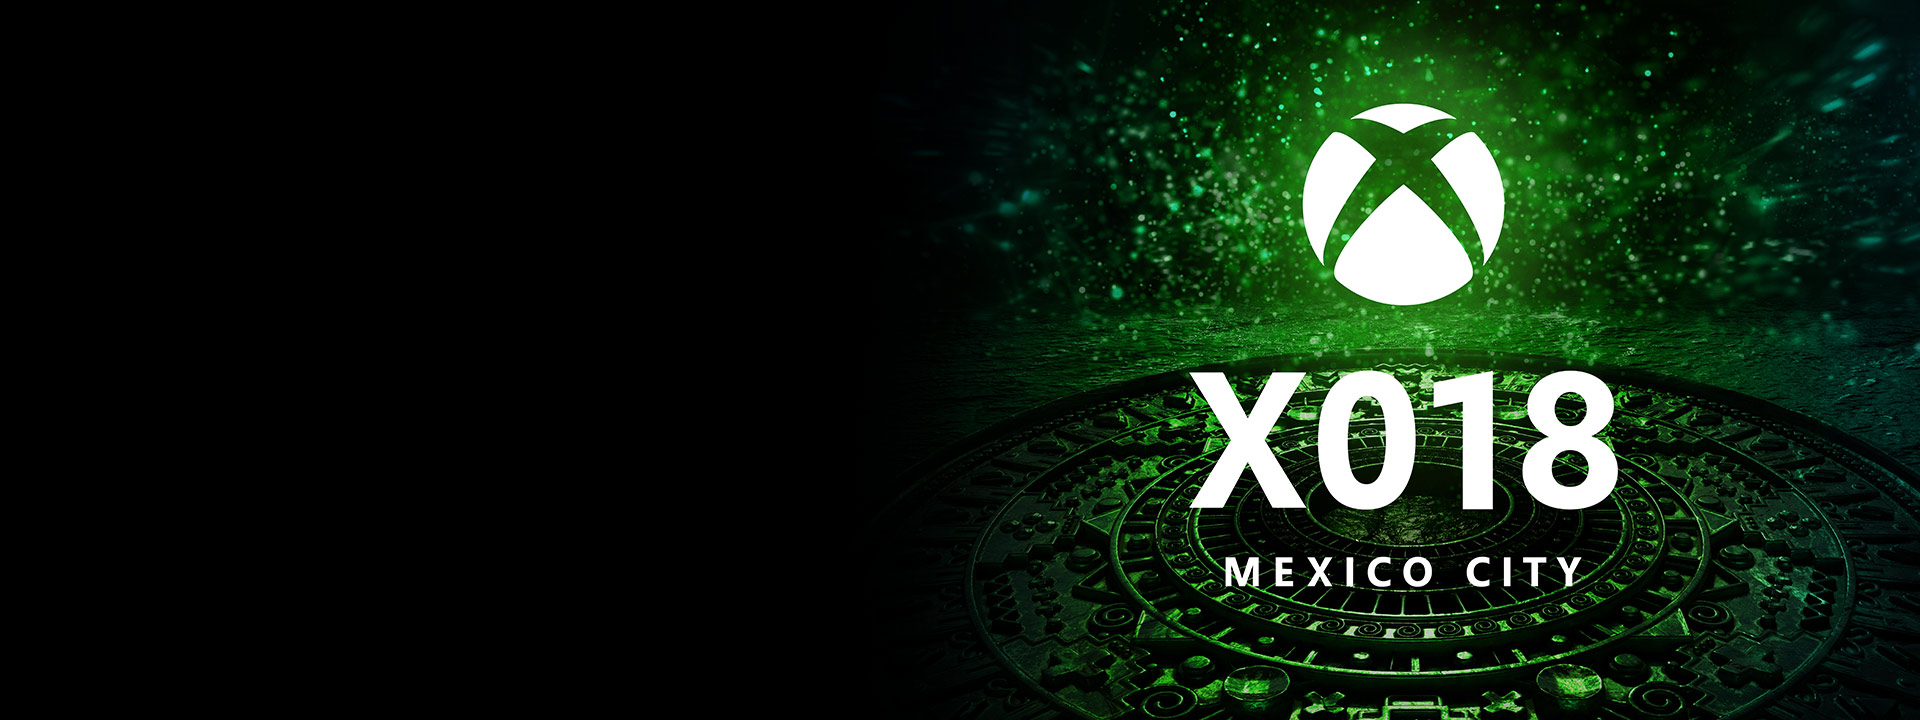 Xbox Official Site Comau Attachments Electricalwiringquestions 23638d1153994657diy Introducing X018 A Global Celebration Of All Things